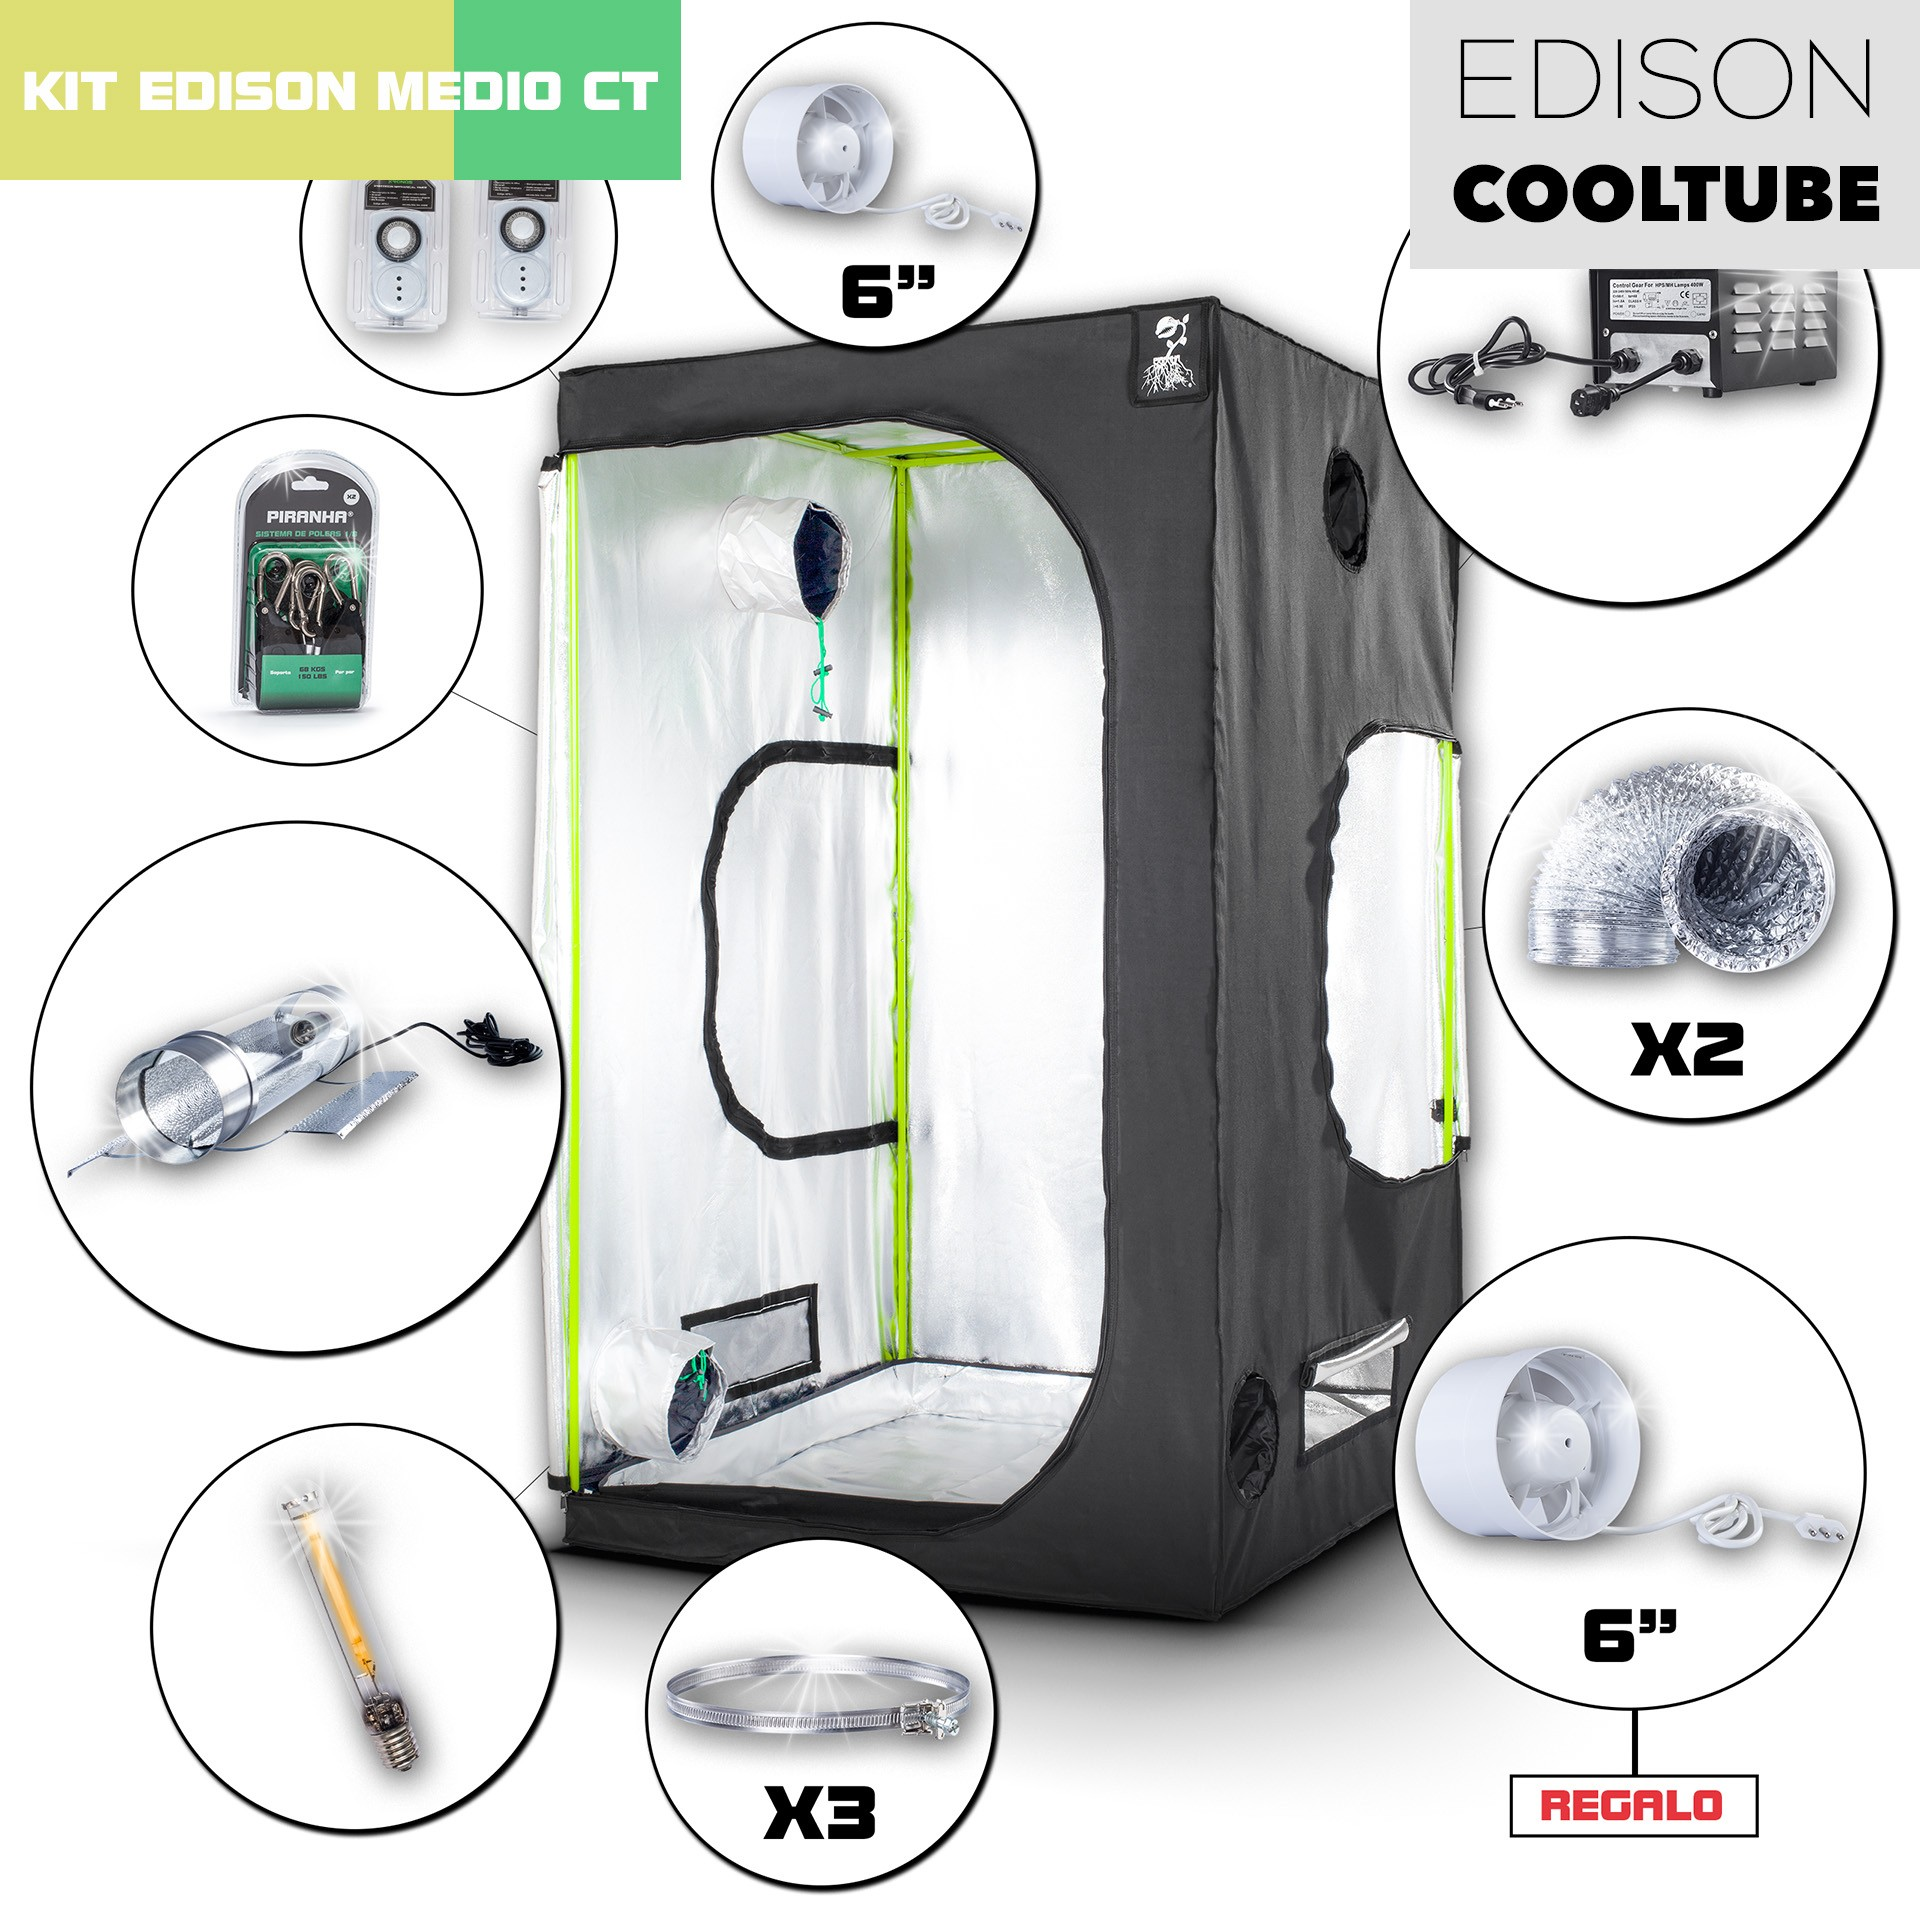 Kit Edison CoolTube 120 Medio 600W